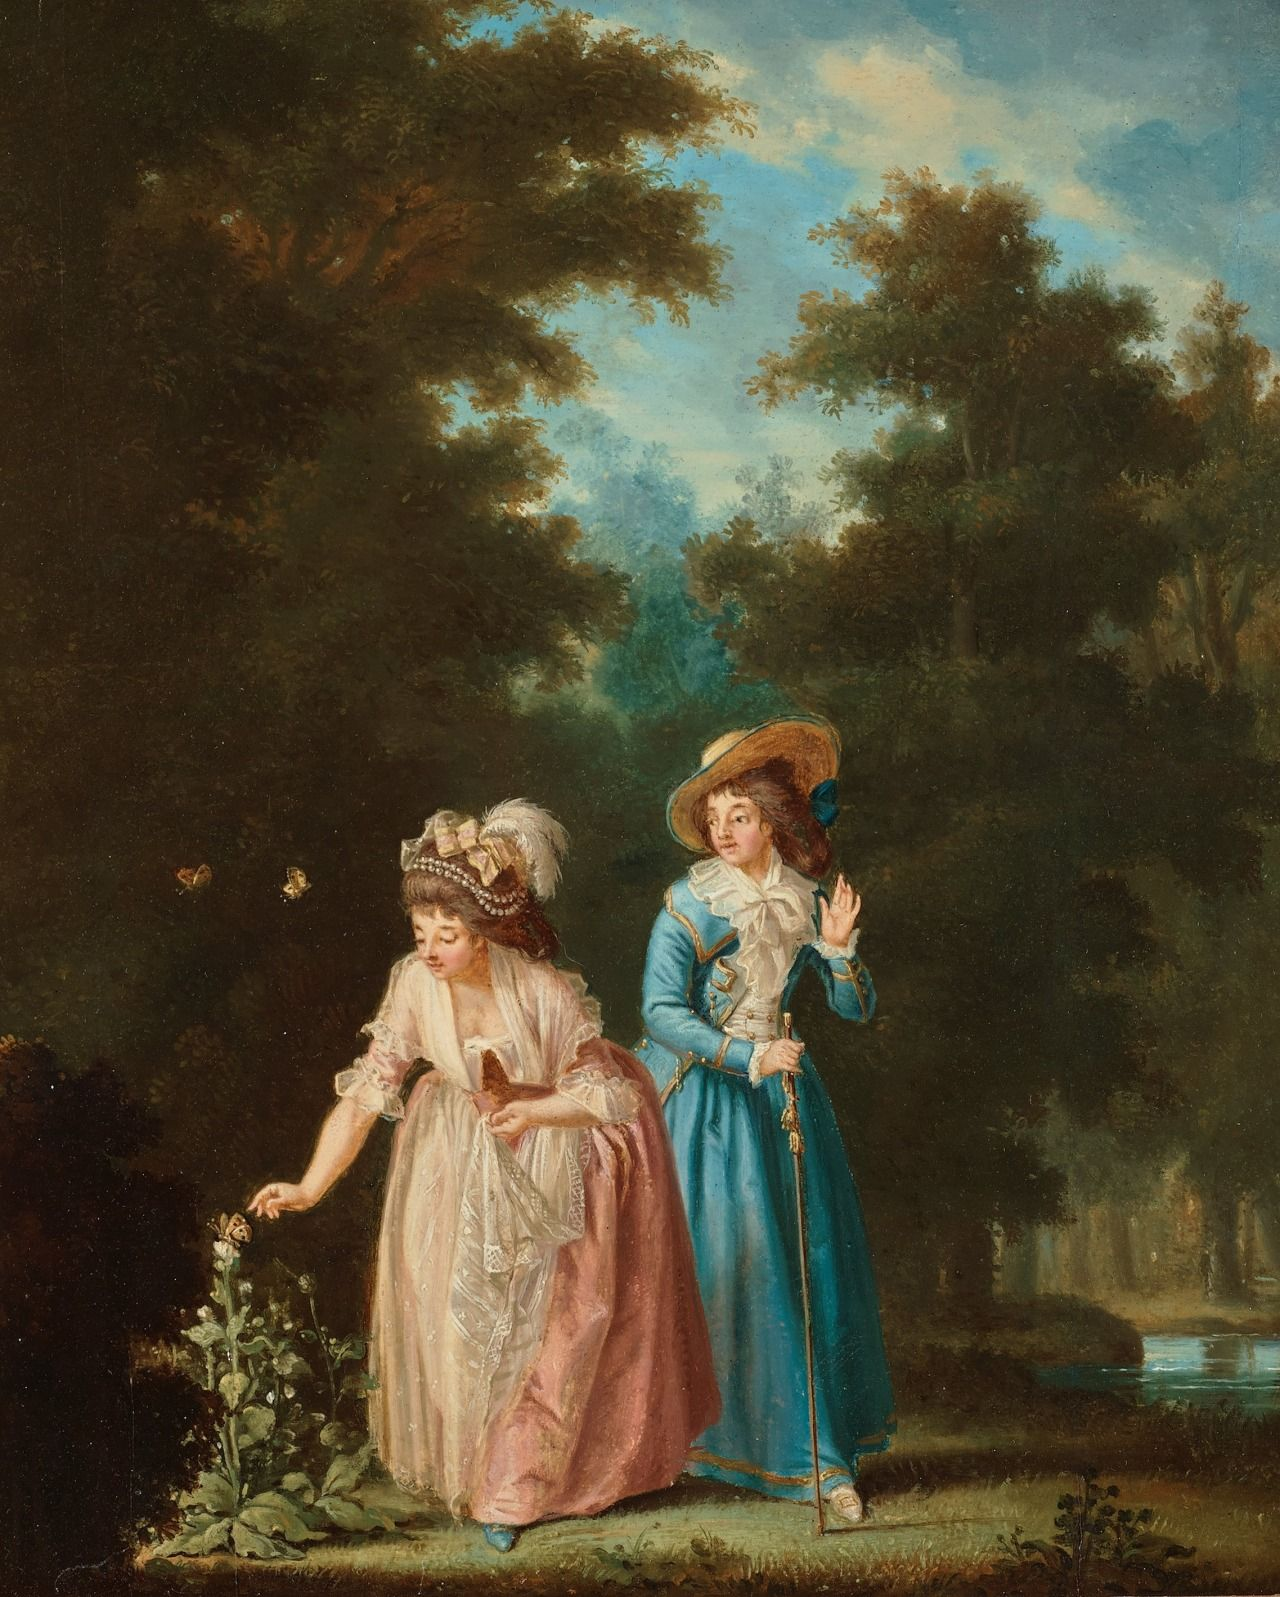 Pehr Hilleström (1732 – 1816) - Two ladies trying to catch a butterfly, 1787